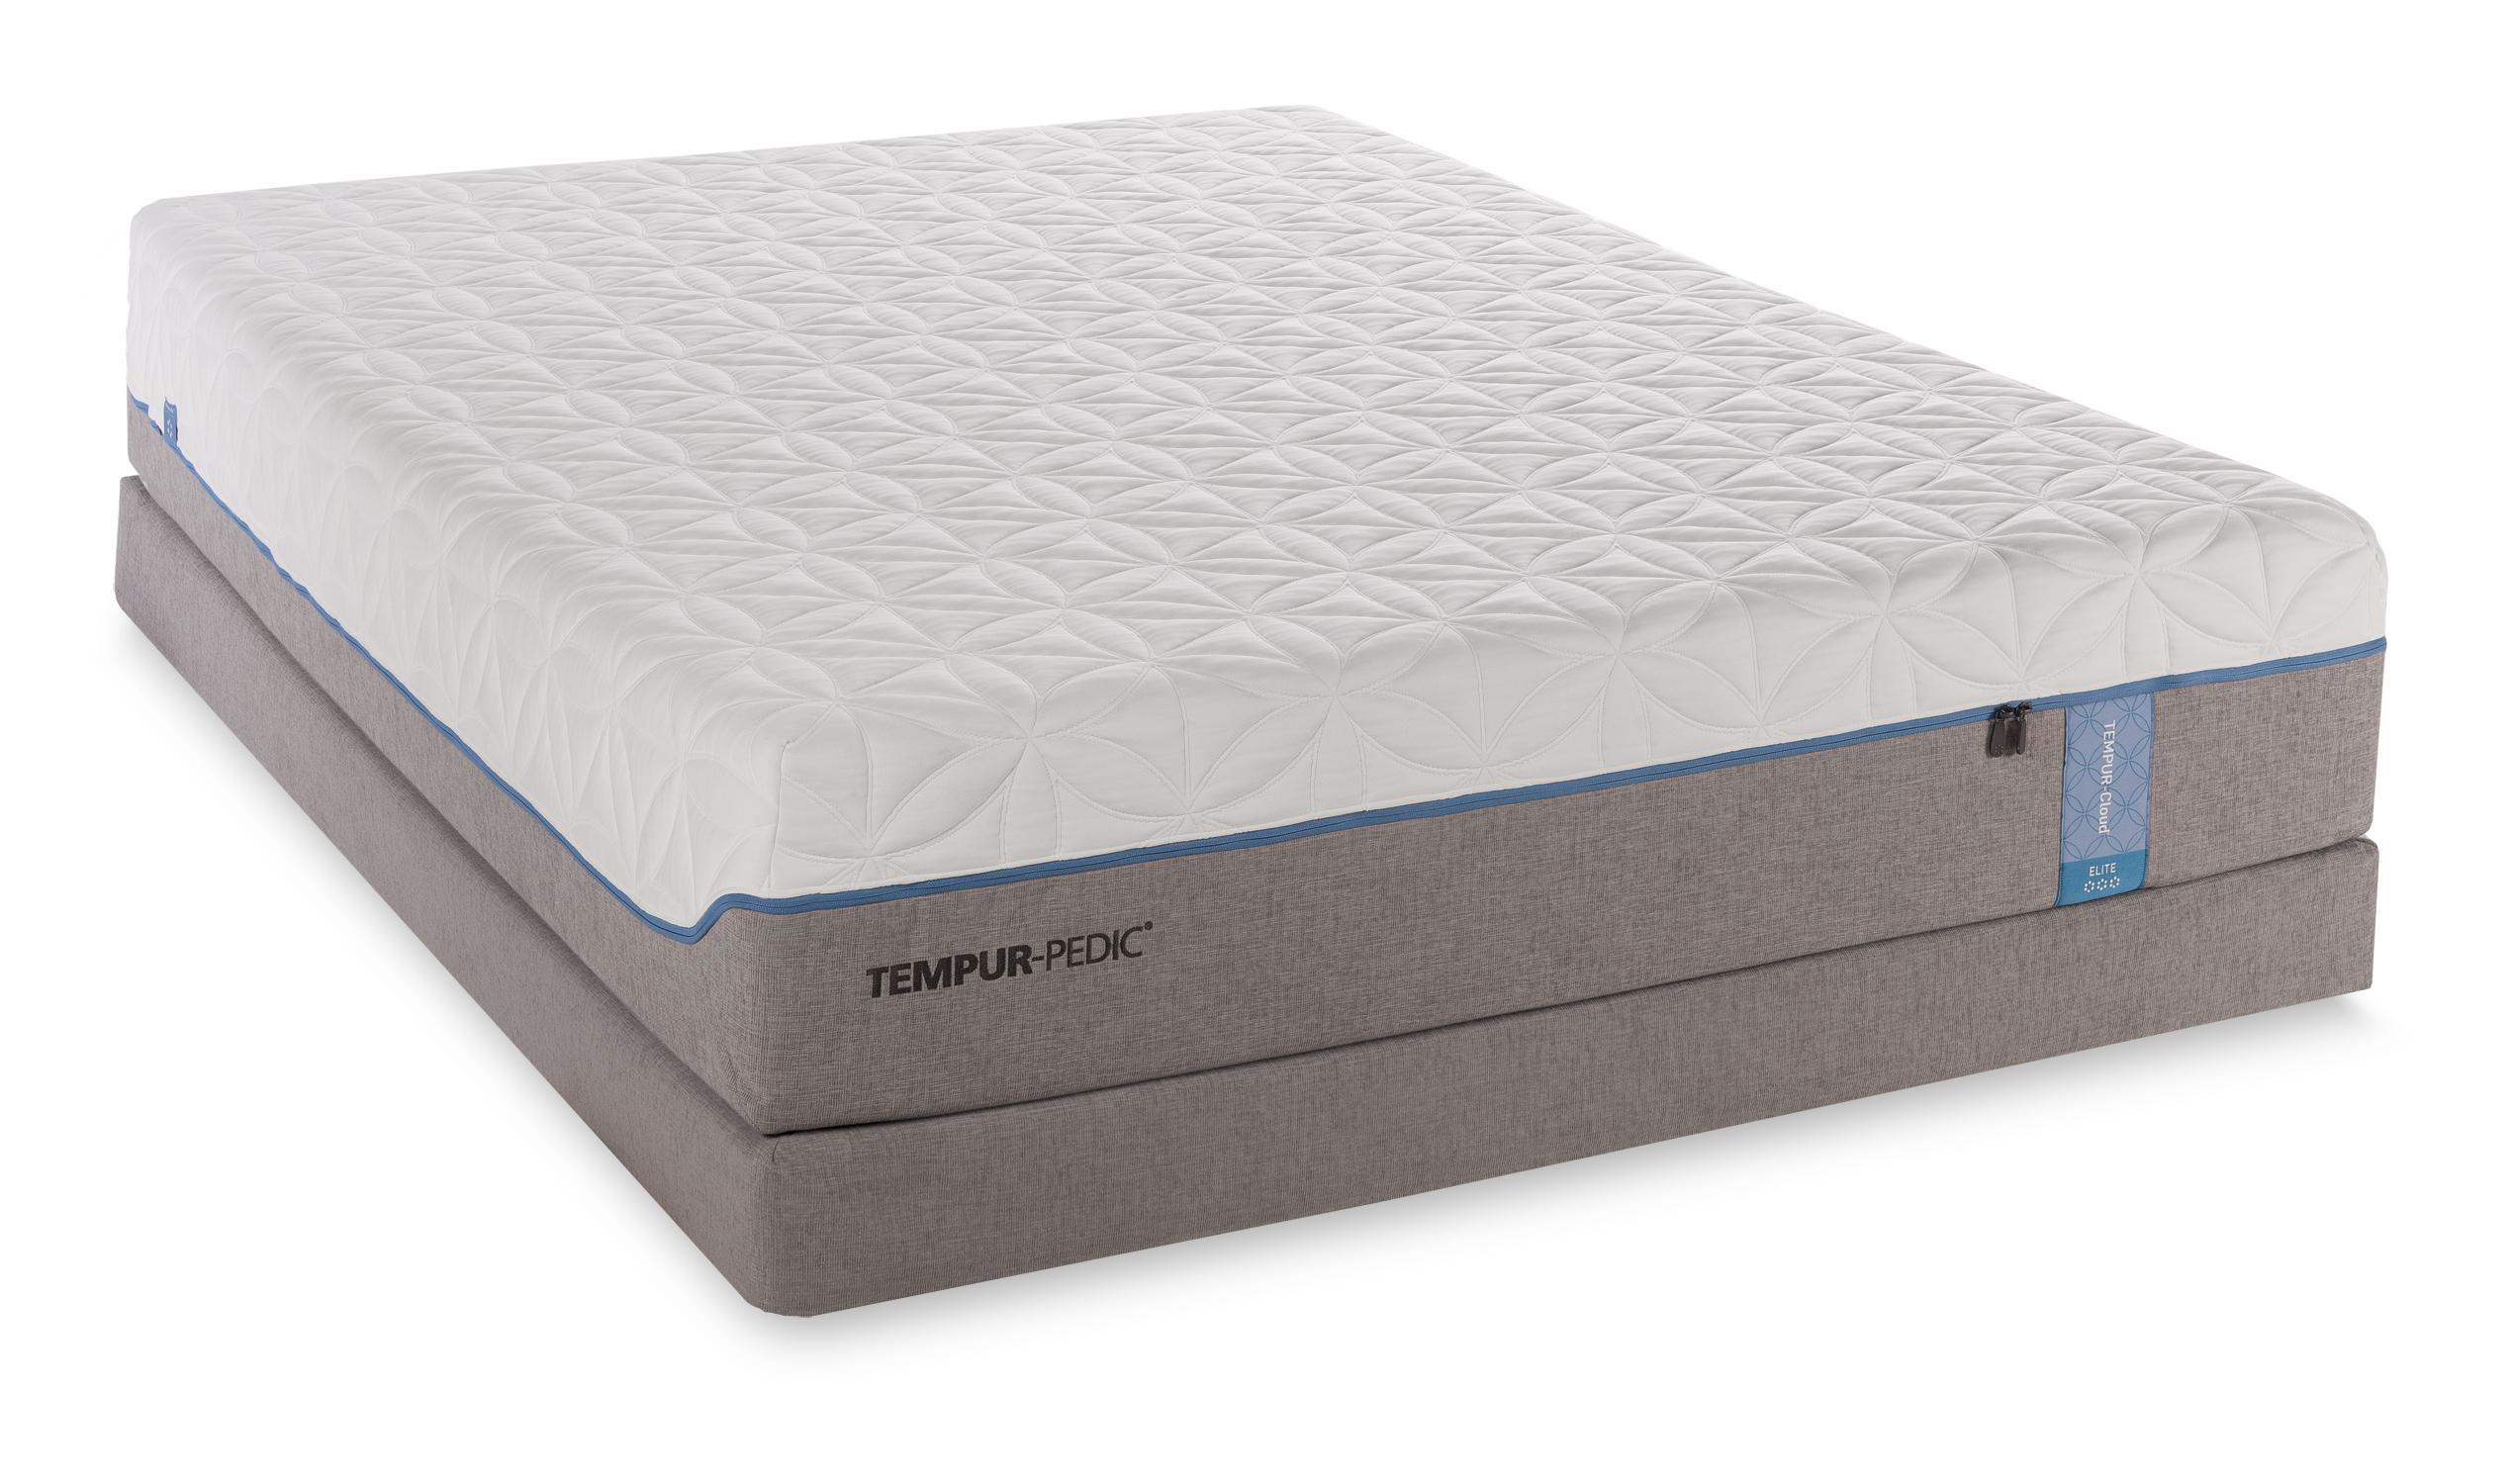 Tempur Pedic Tempur Cloud Elite Cal King Extra Soft